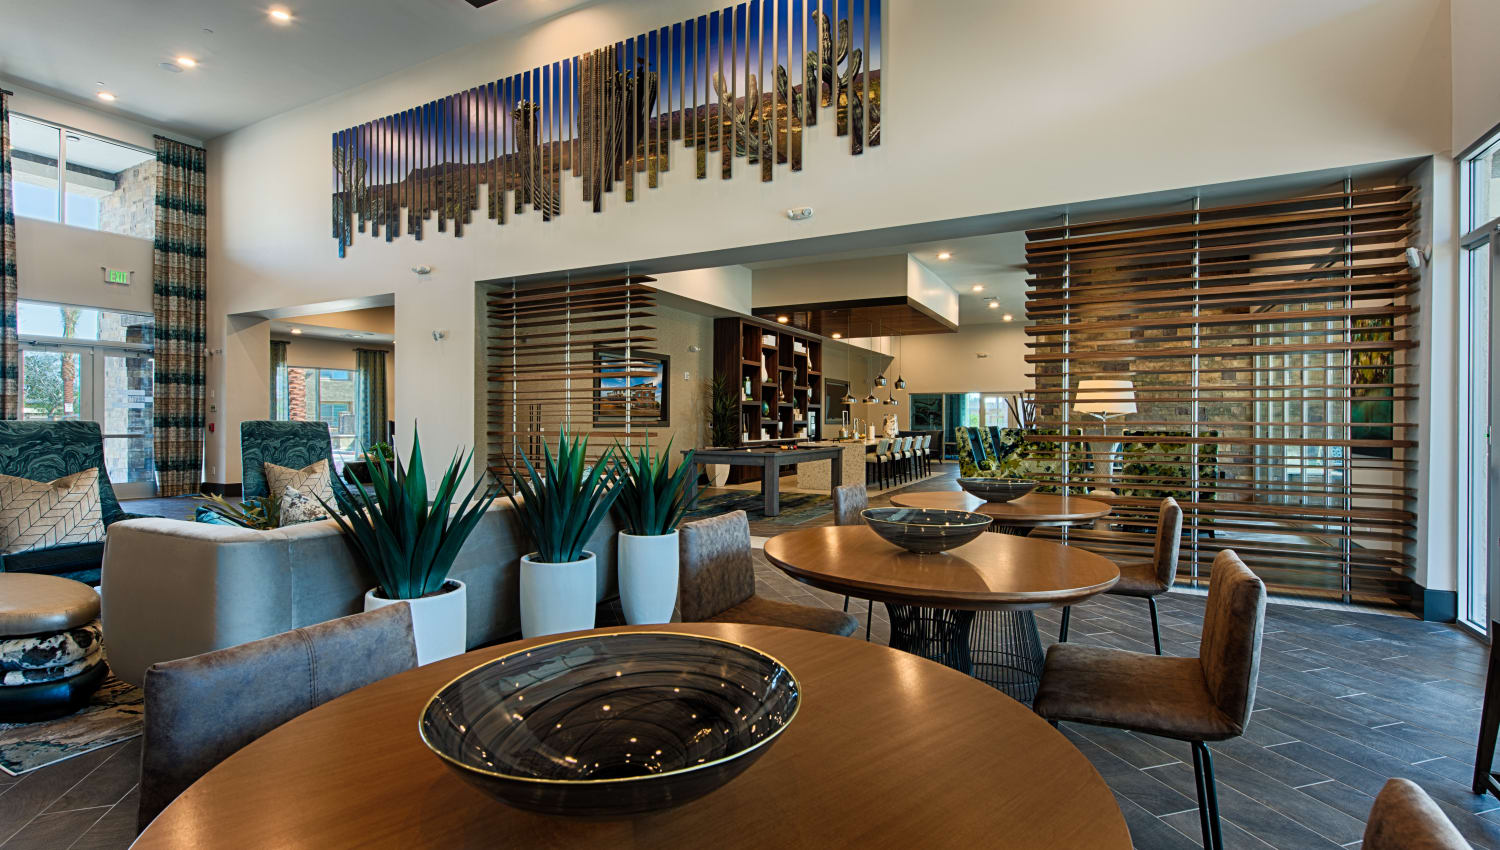 Community dining area at Ocio Plaza Del Rio in Peoria, Arizona